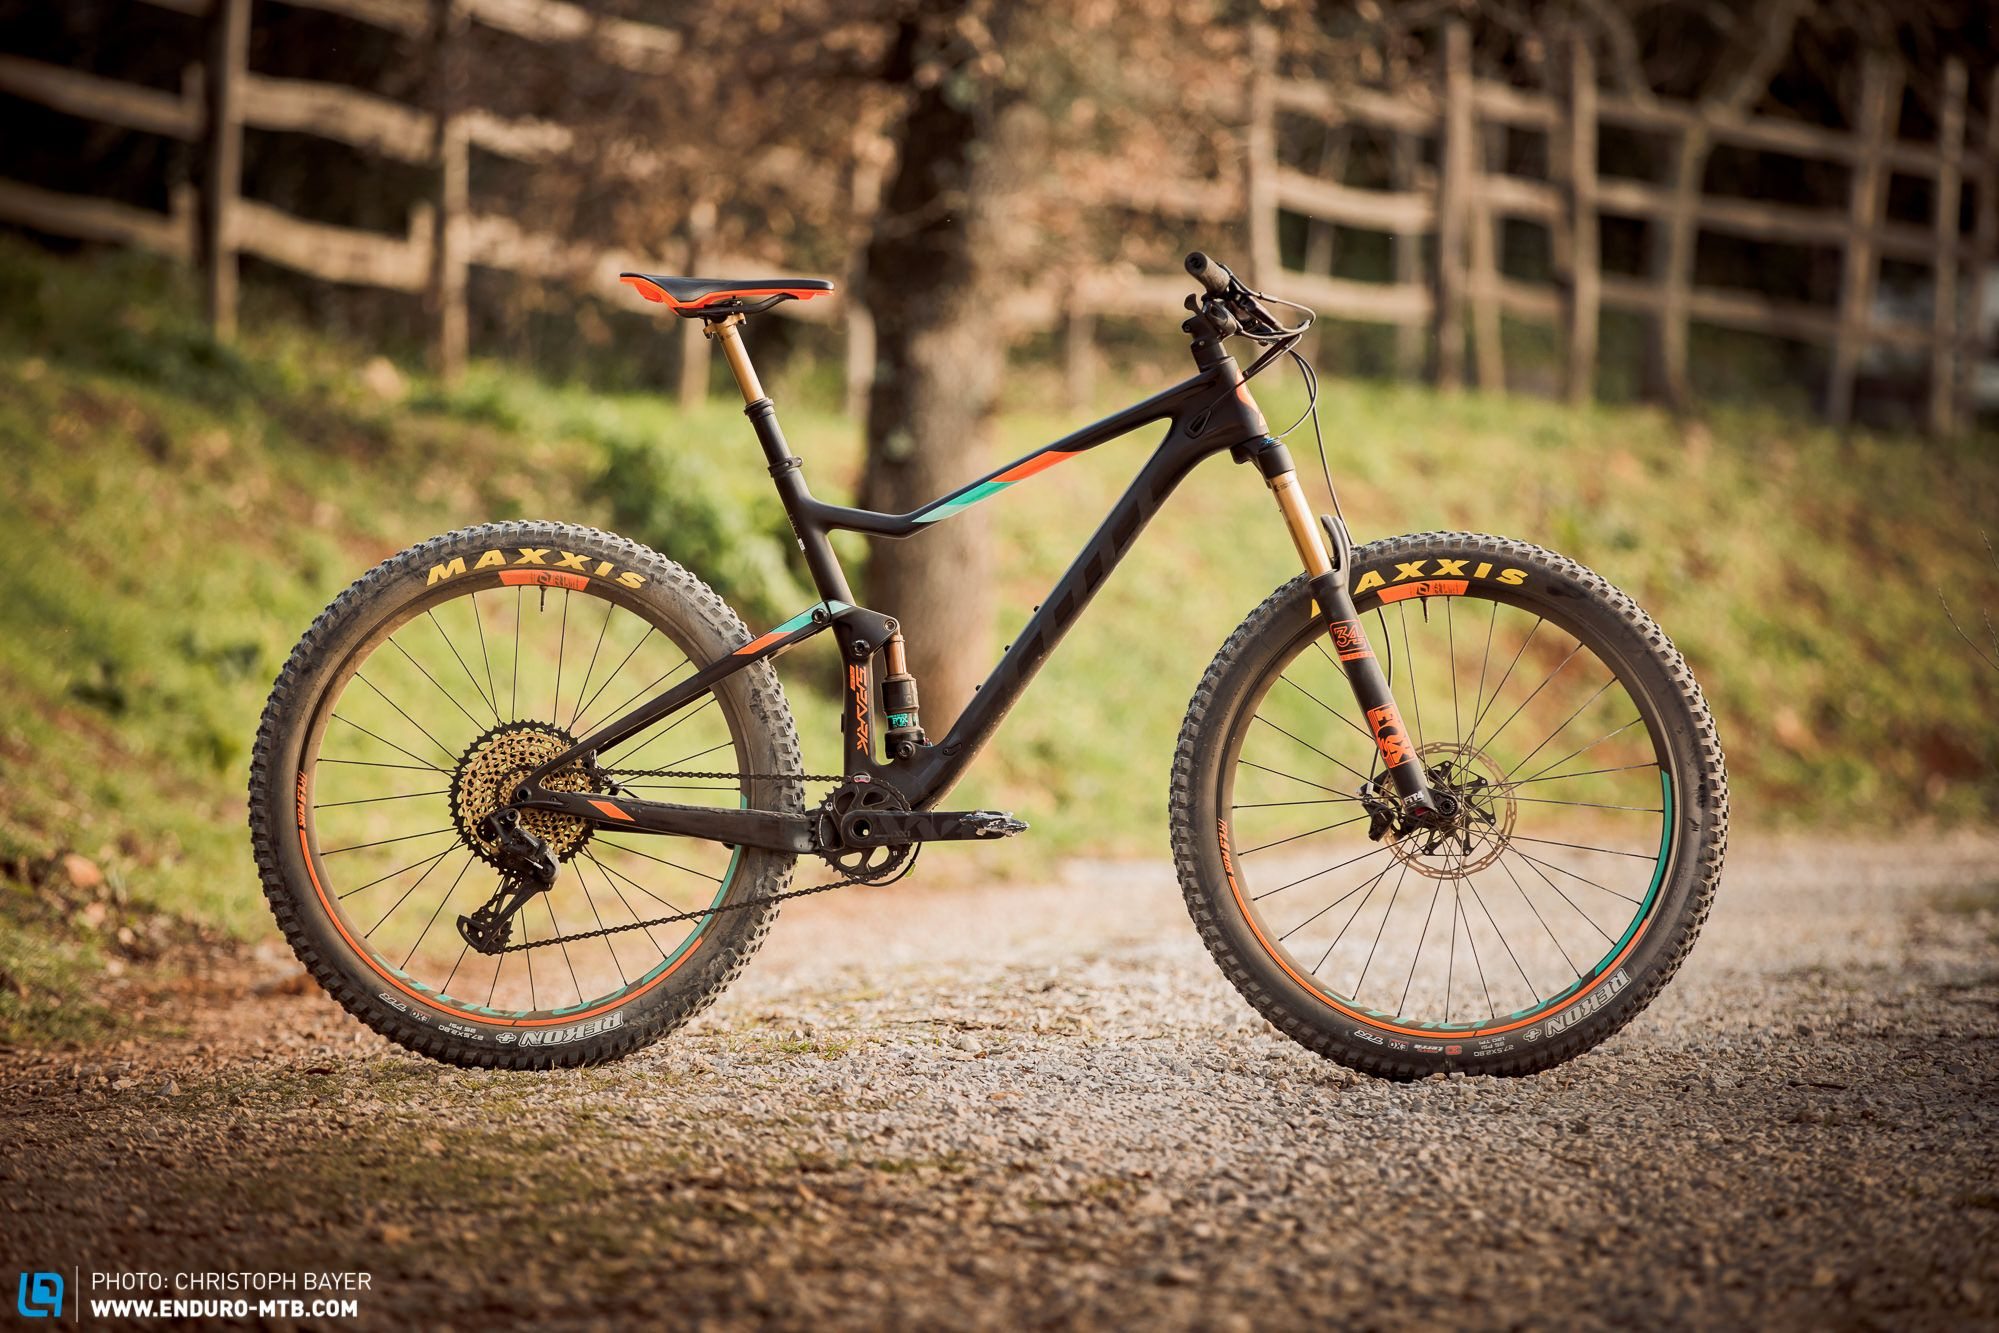 SCOTT duly launched the SCOTT Spark Plus, a much more trail-orientated bike with more travel, plus-size tires, and ultimately the potential for more grins.